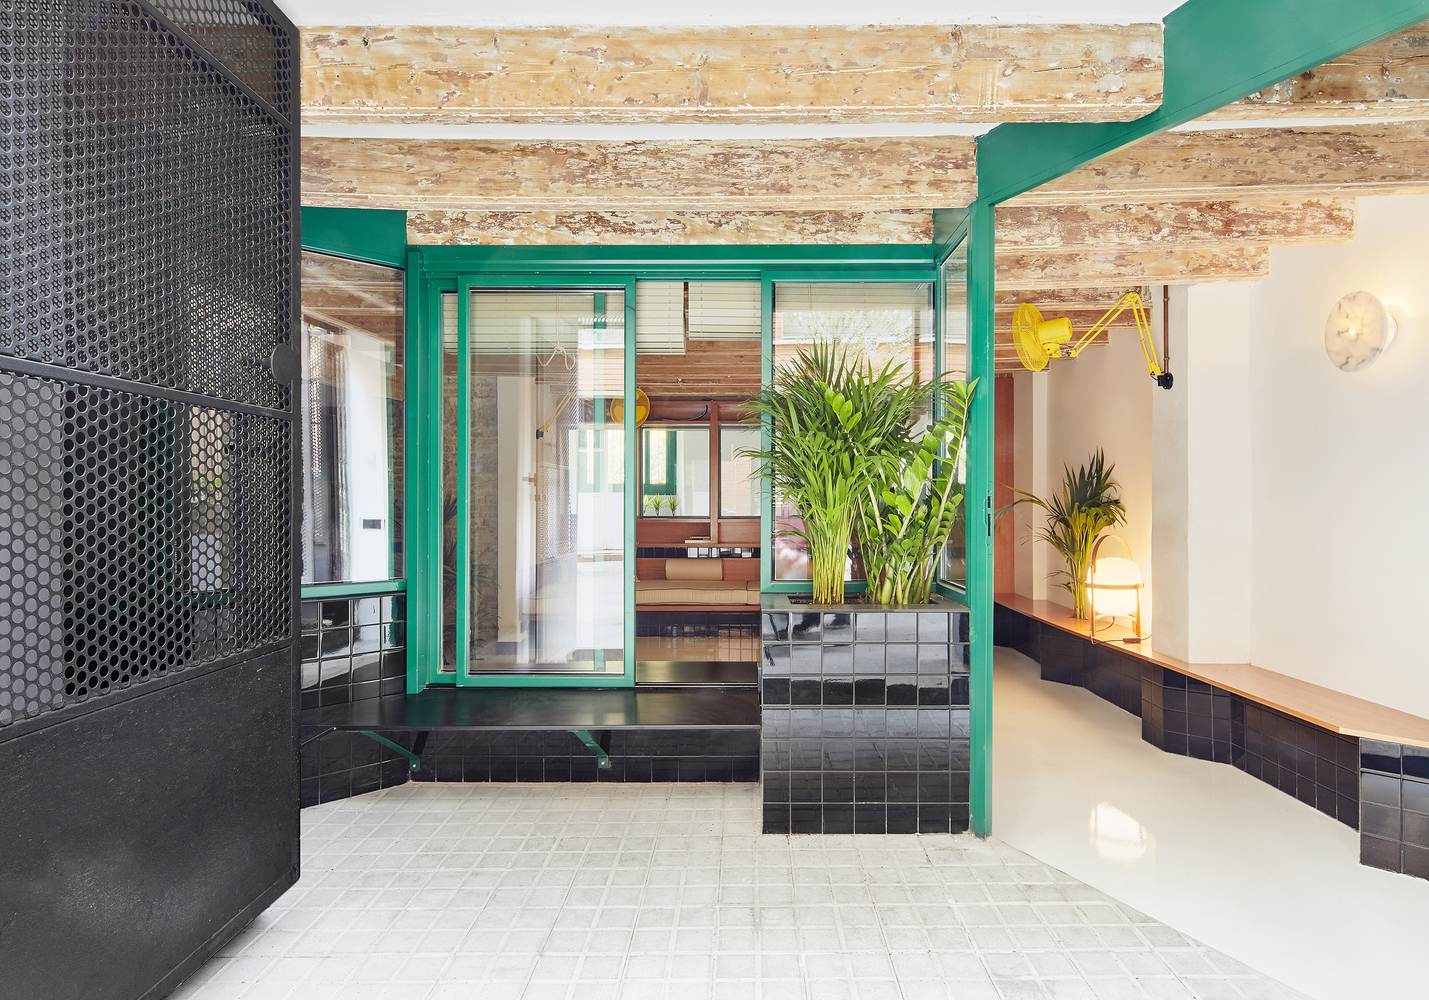 10 Different Projects That Feature the Color Green! - Raval Hideaway / Sarriera-Weinstock